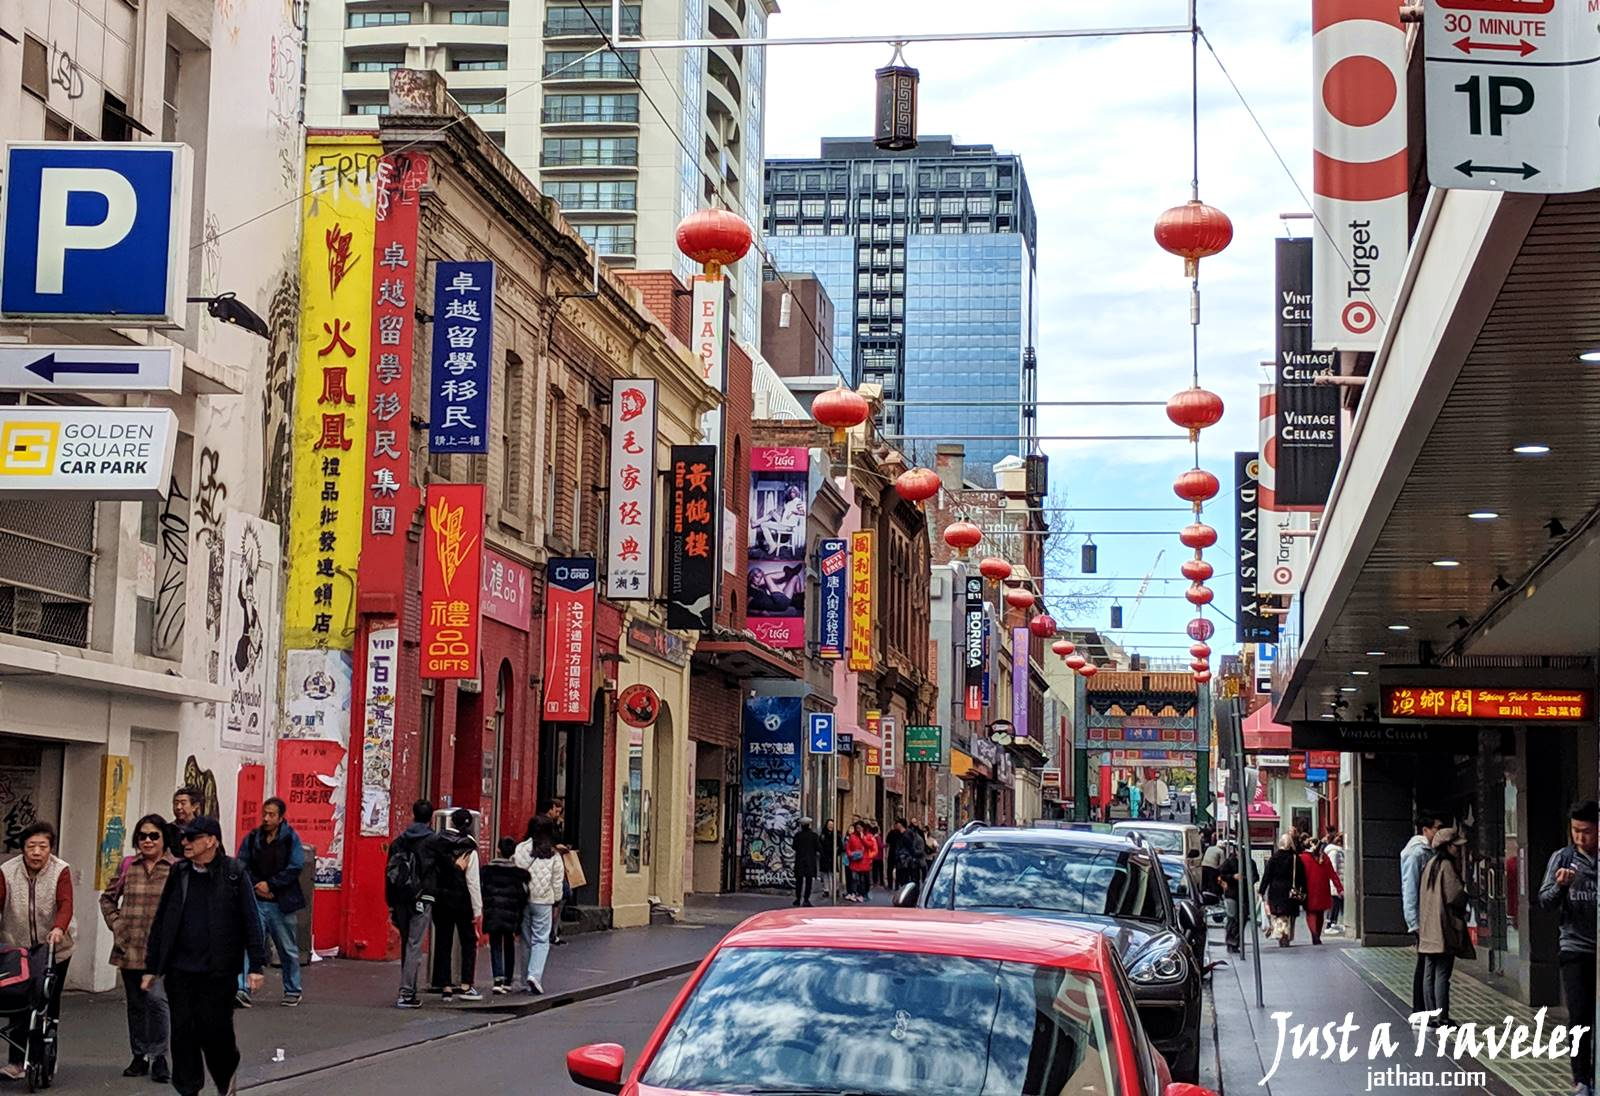 Melbourne-Chinatown Melbourne-CBD-Attraction-Recommendation-Map-Itinerary-Tourism-Independent Travel-Travel Blog-Must visit-Must See